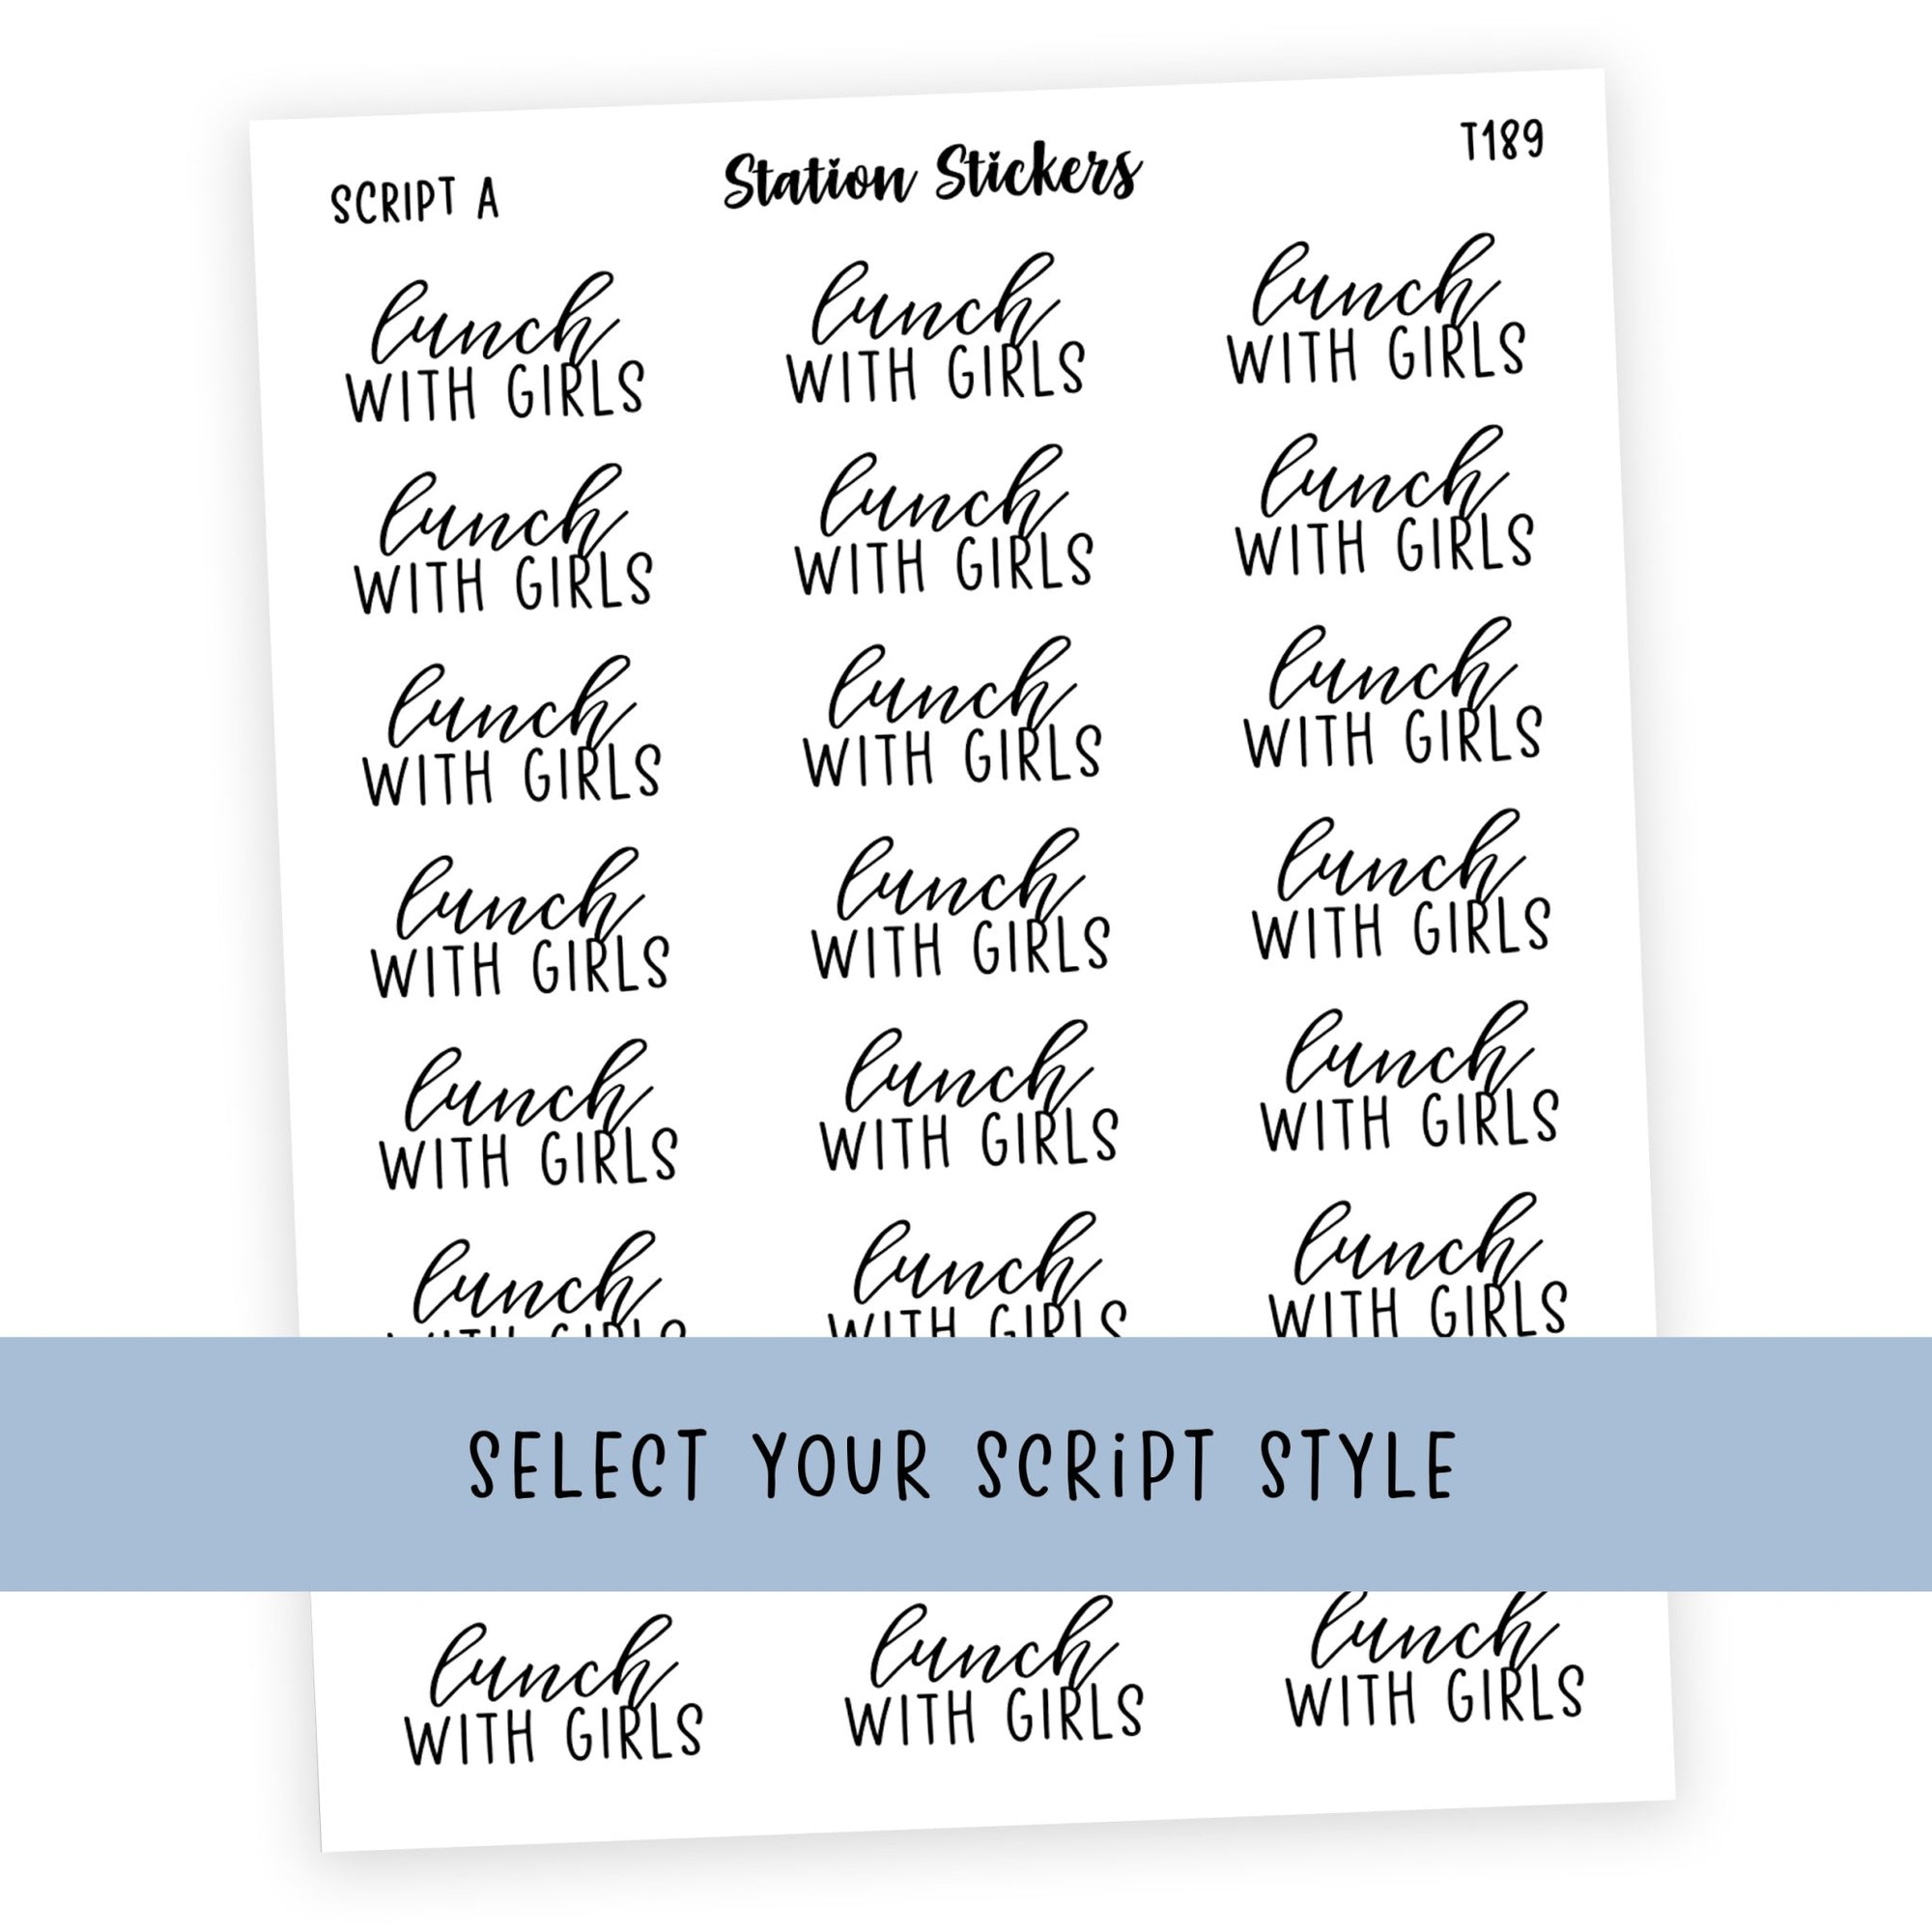 LUNCH WITH THE GIRLS • SCRIPTS - Station Stickers